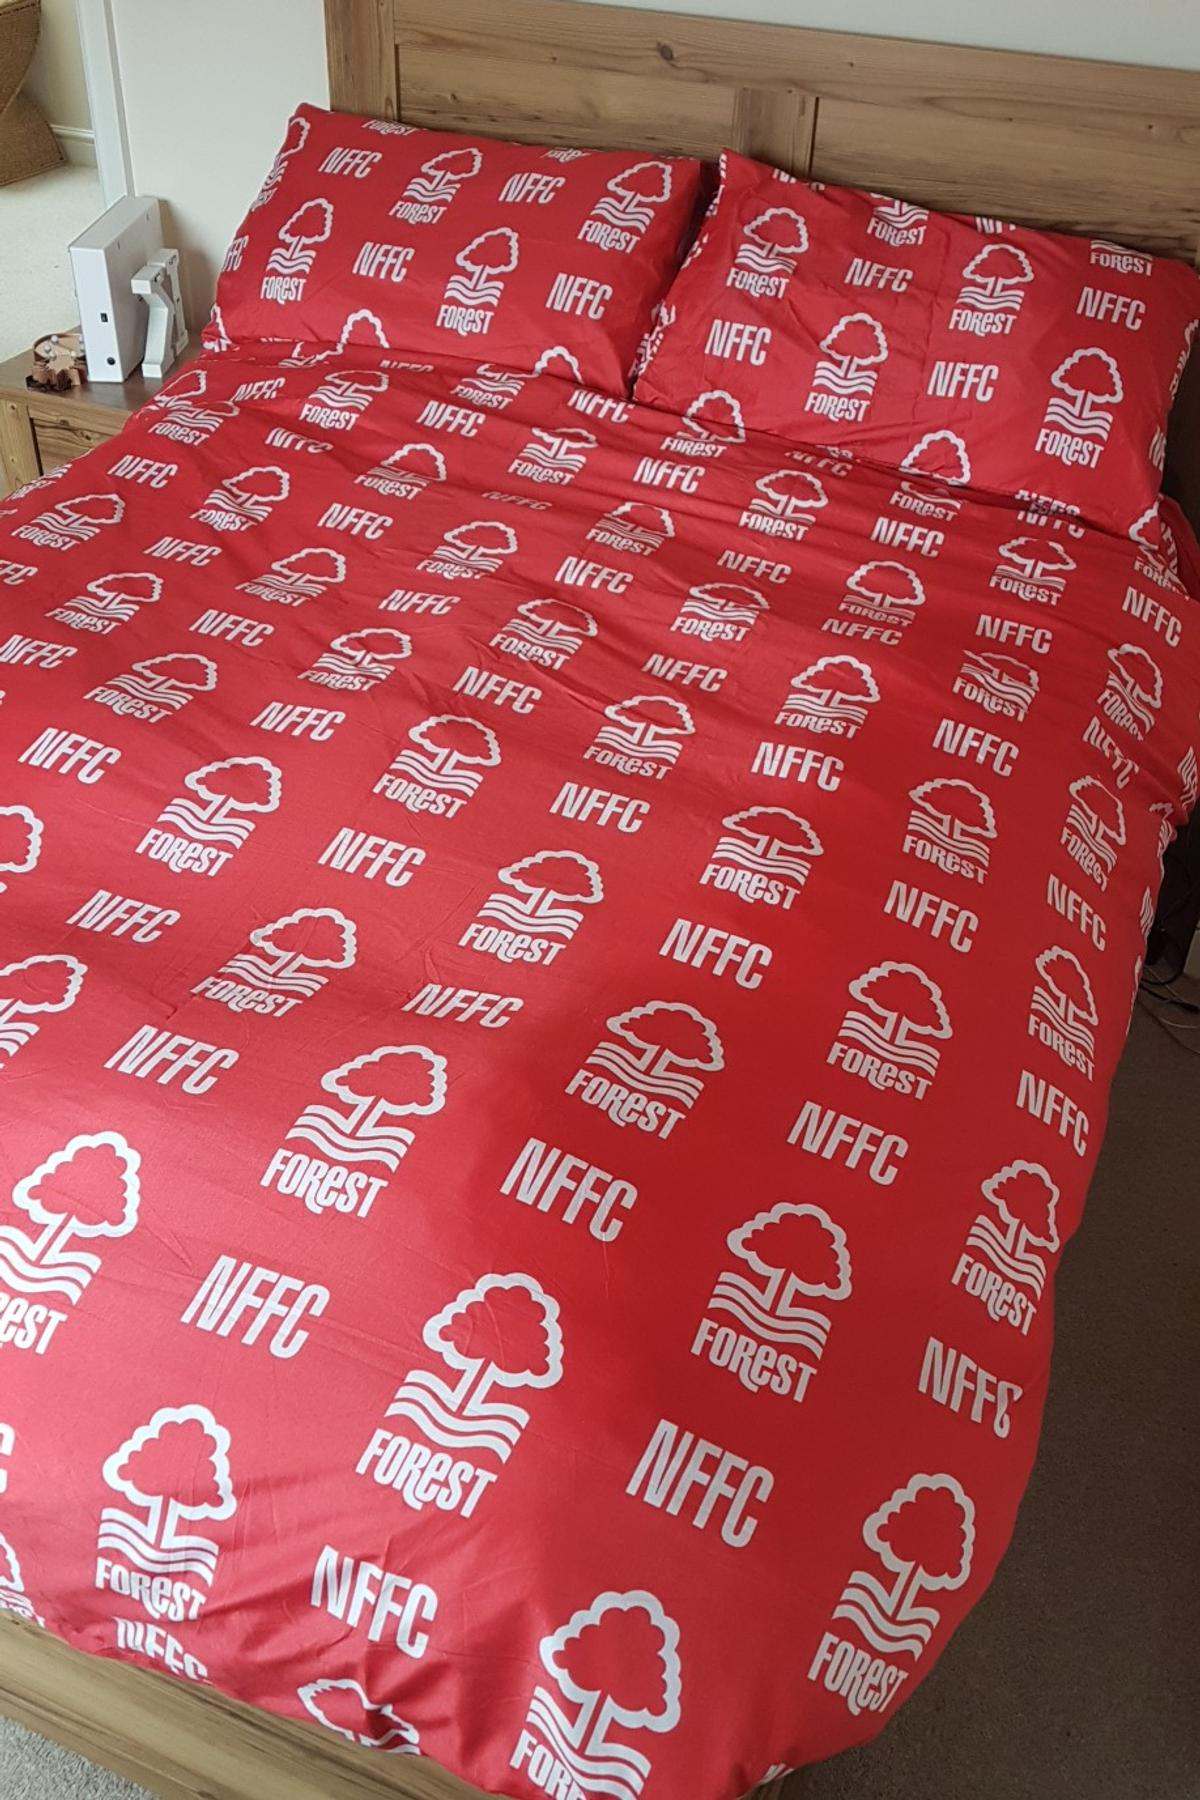 Nffc Double Duvet And 4 Pillow Cases In